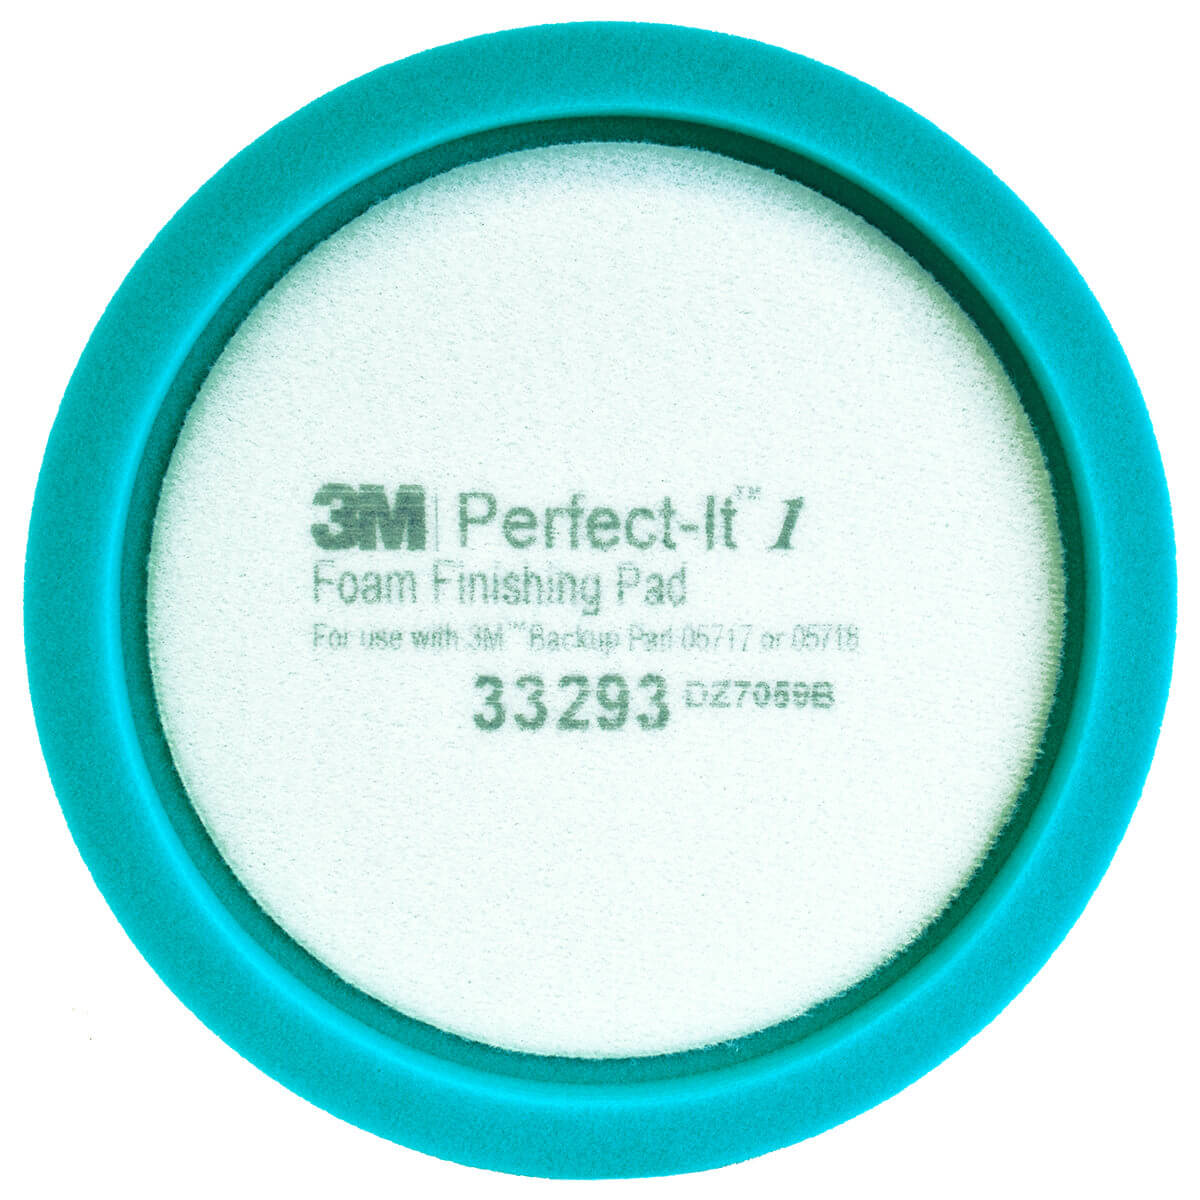 Boina de Espuma Verde Perfect-it 8 Pol PN33293 3M